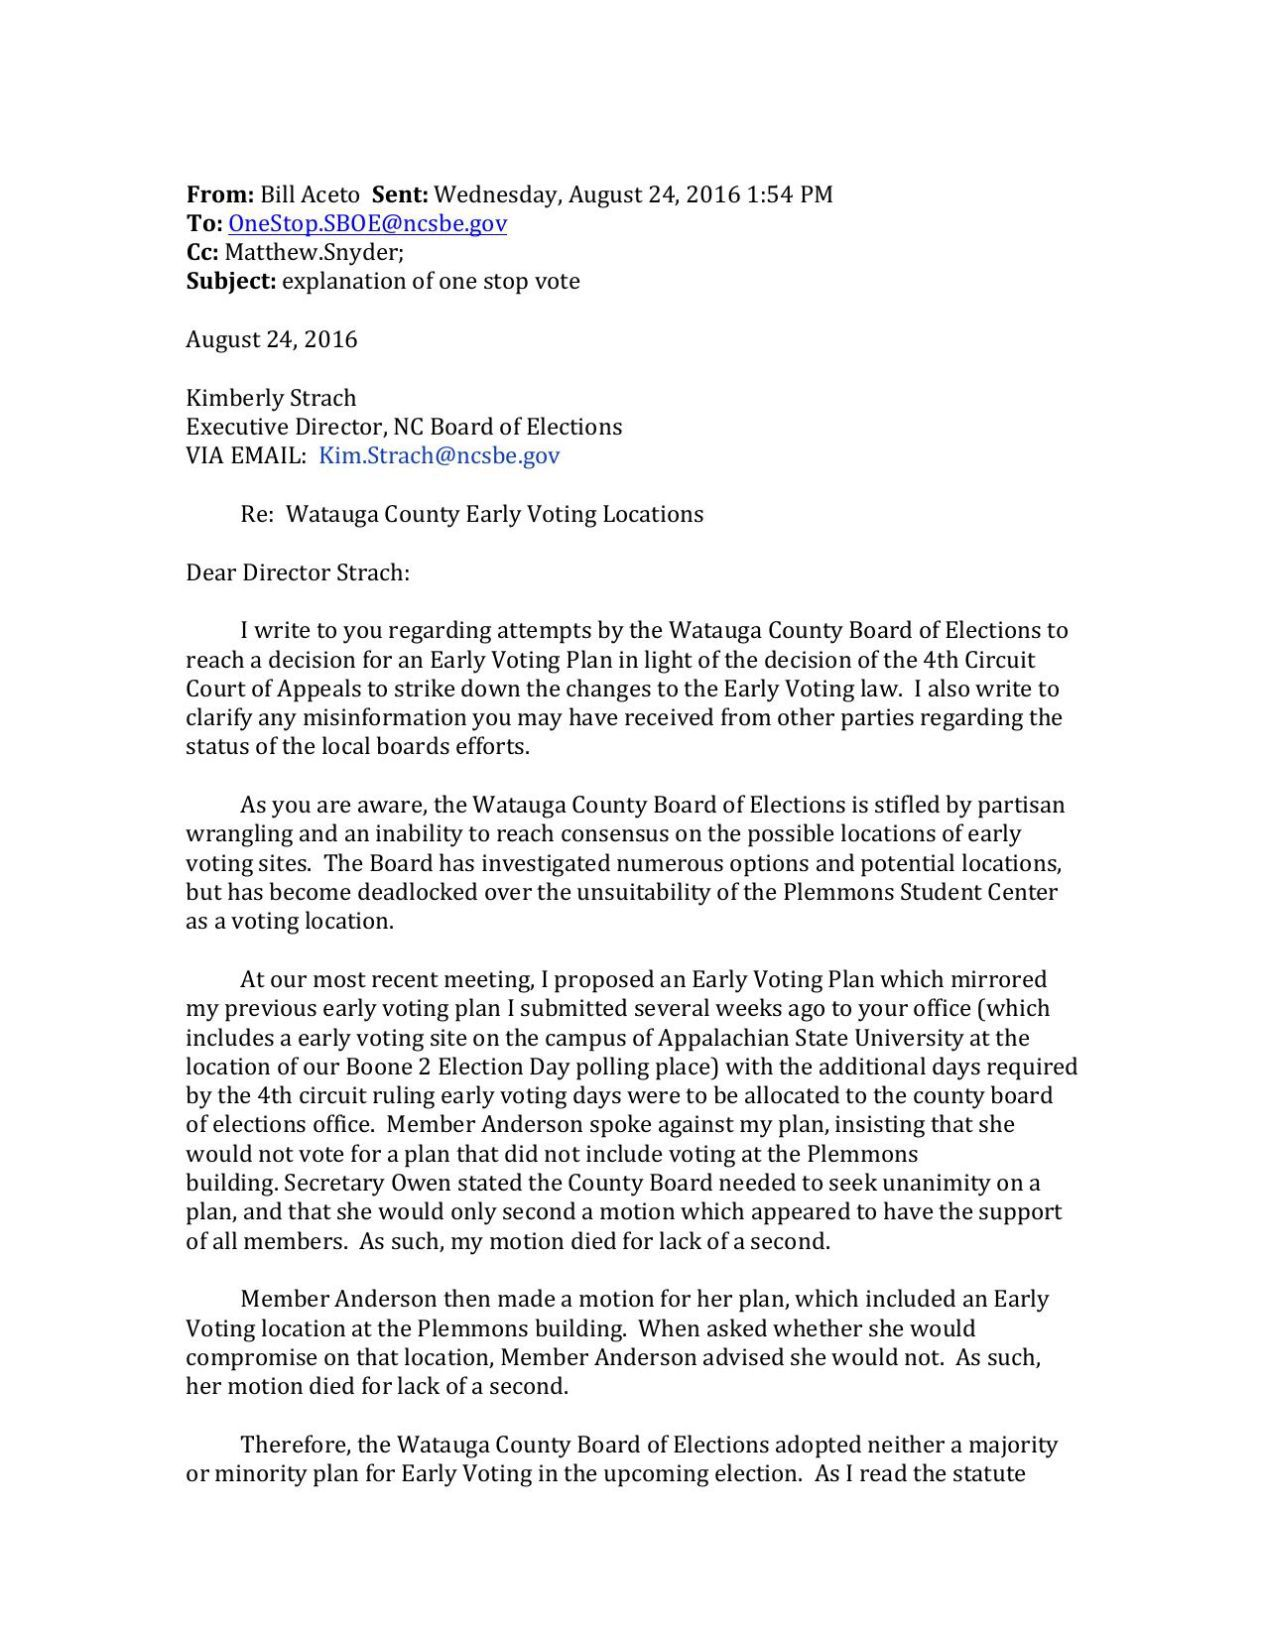 Aug. 24 Aceto letter to SBOE